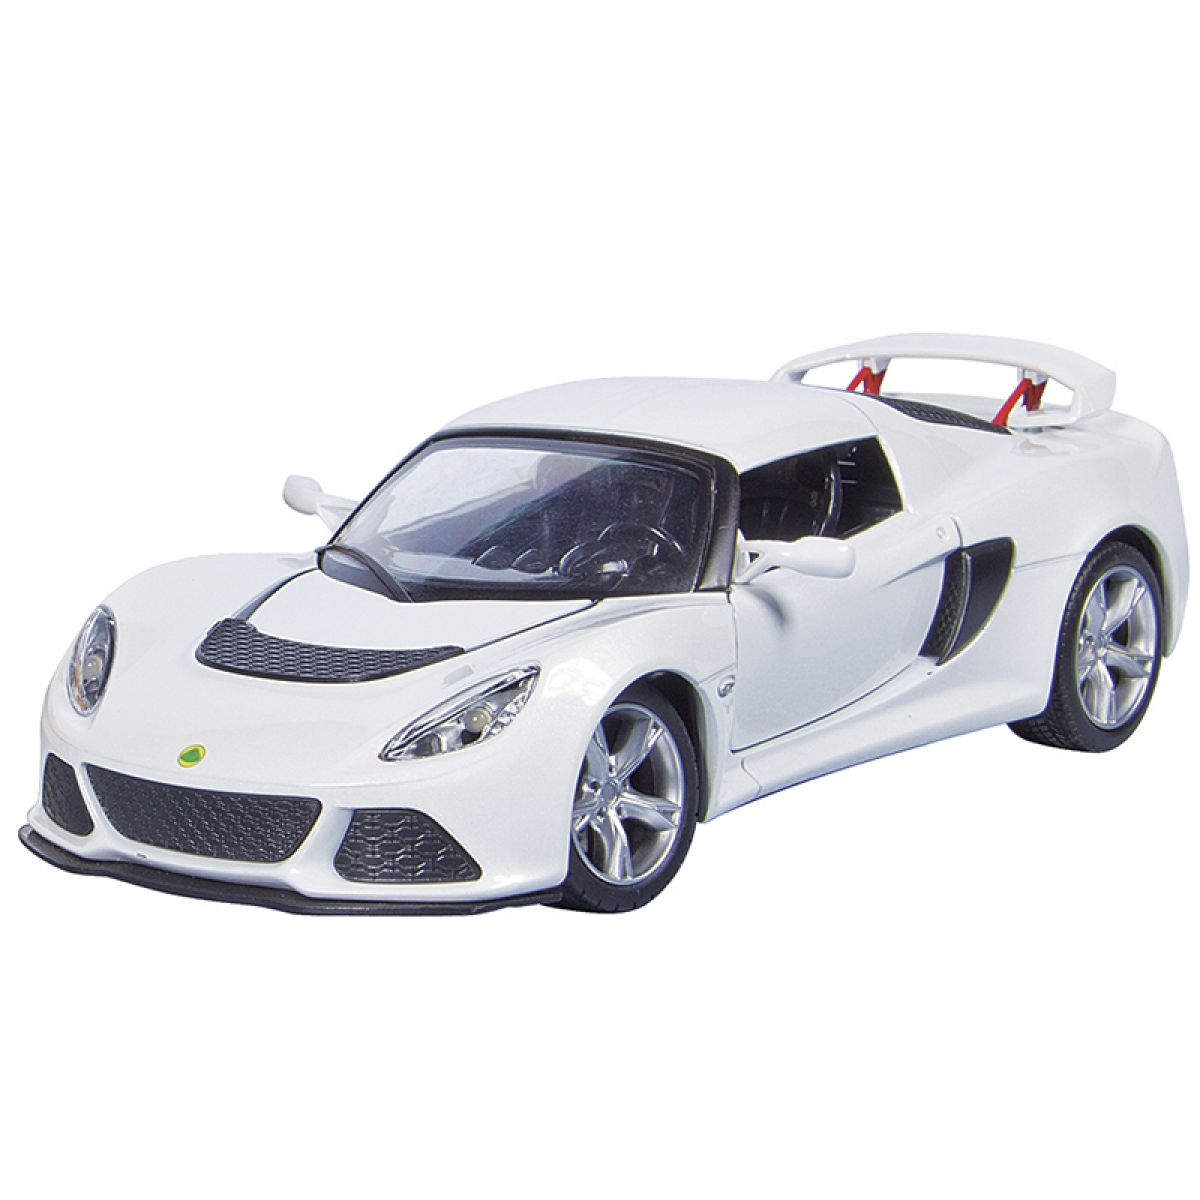 HM Studio kovový model Lotus Exige S 1:22